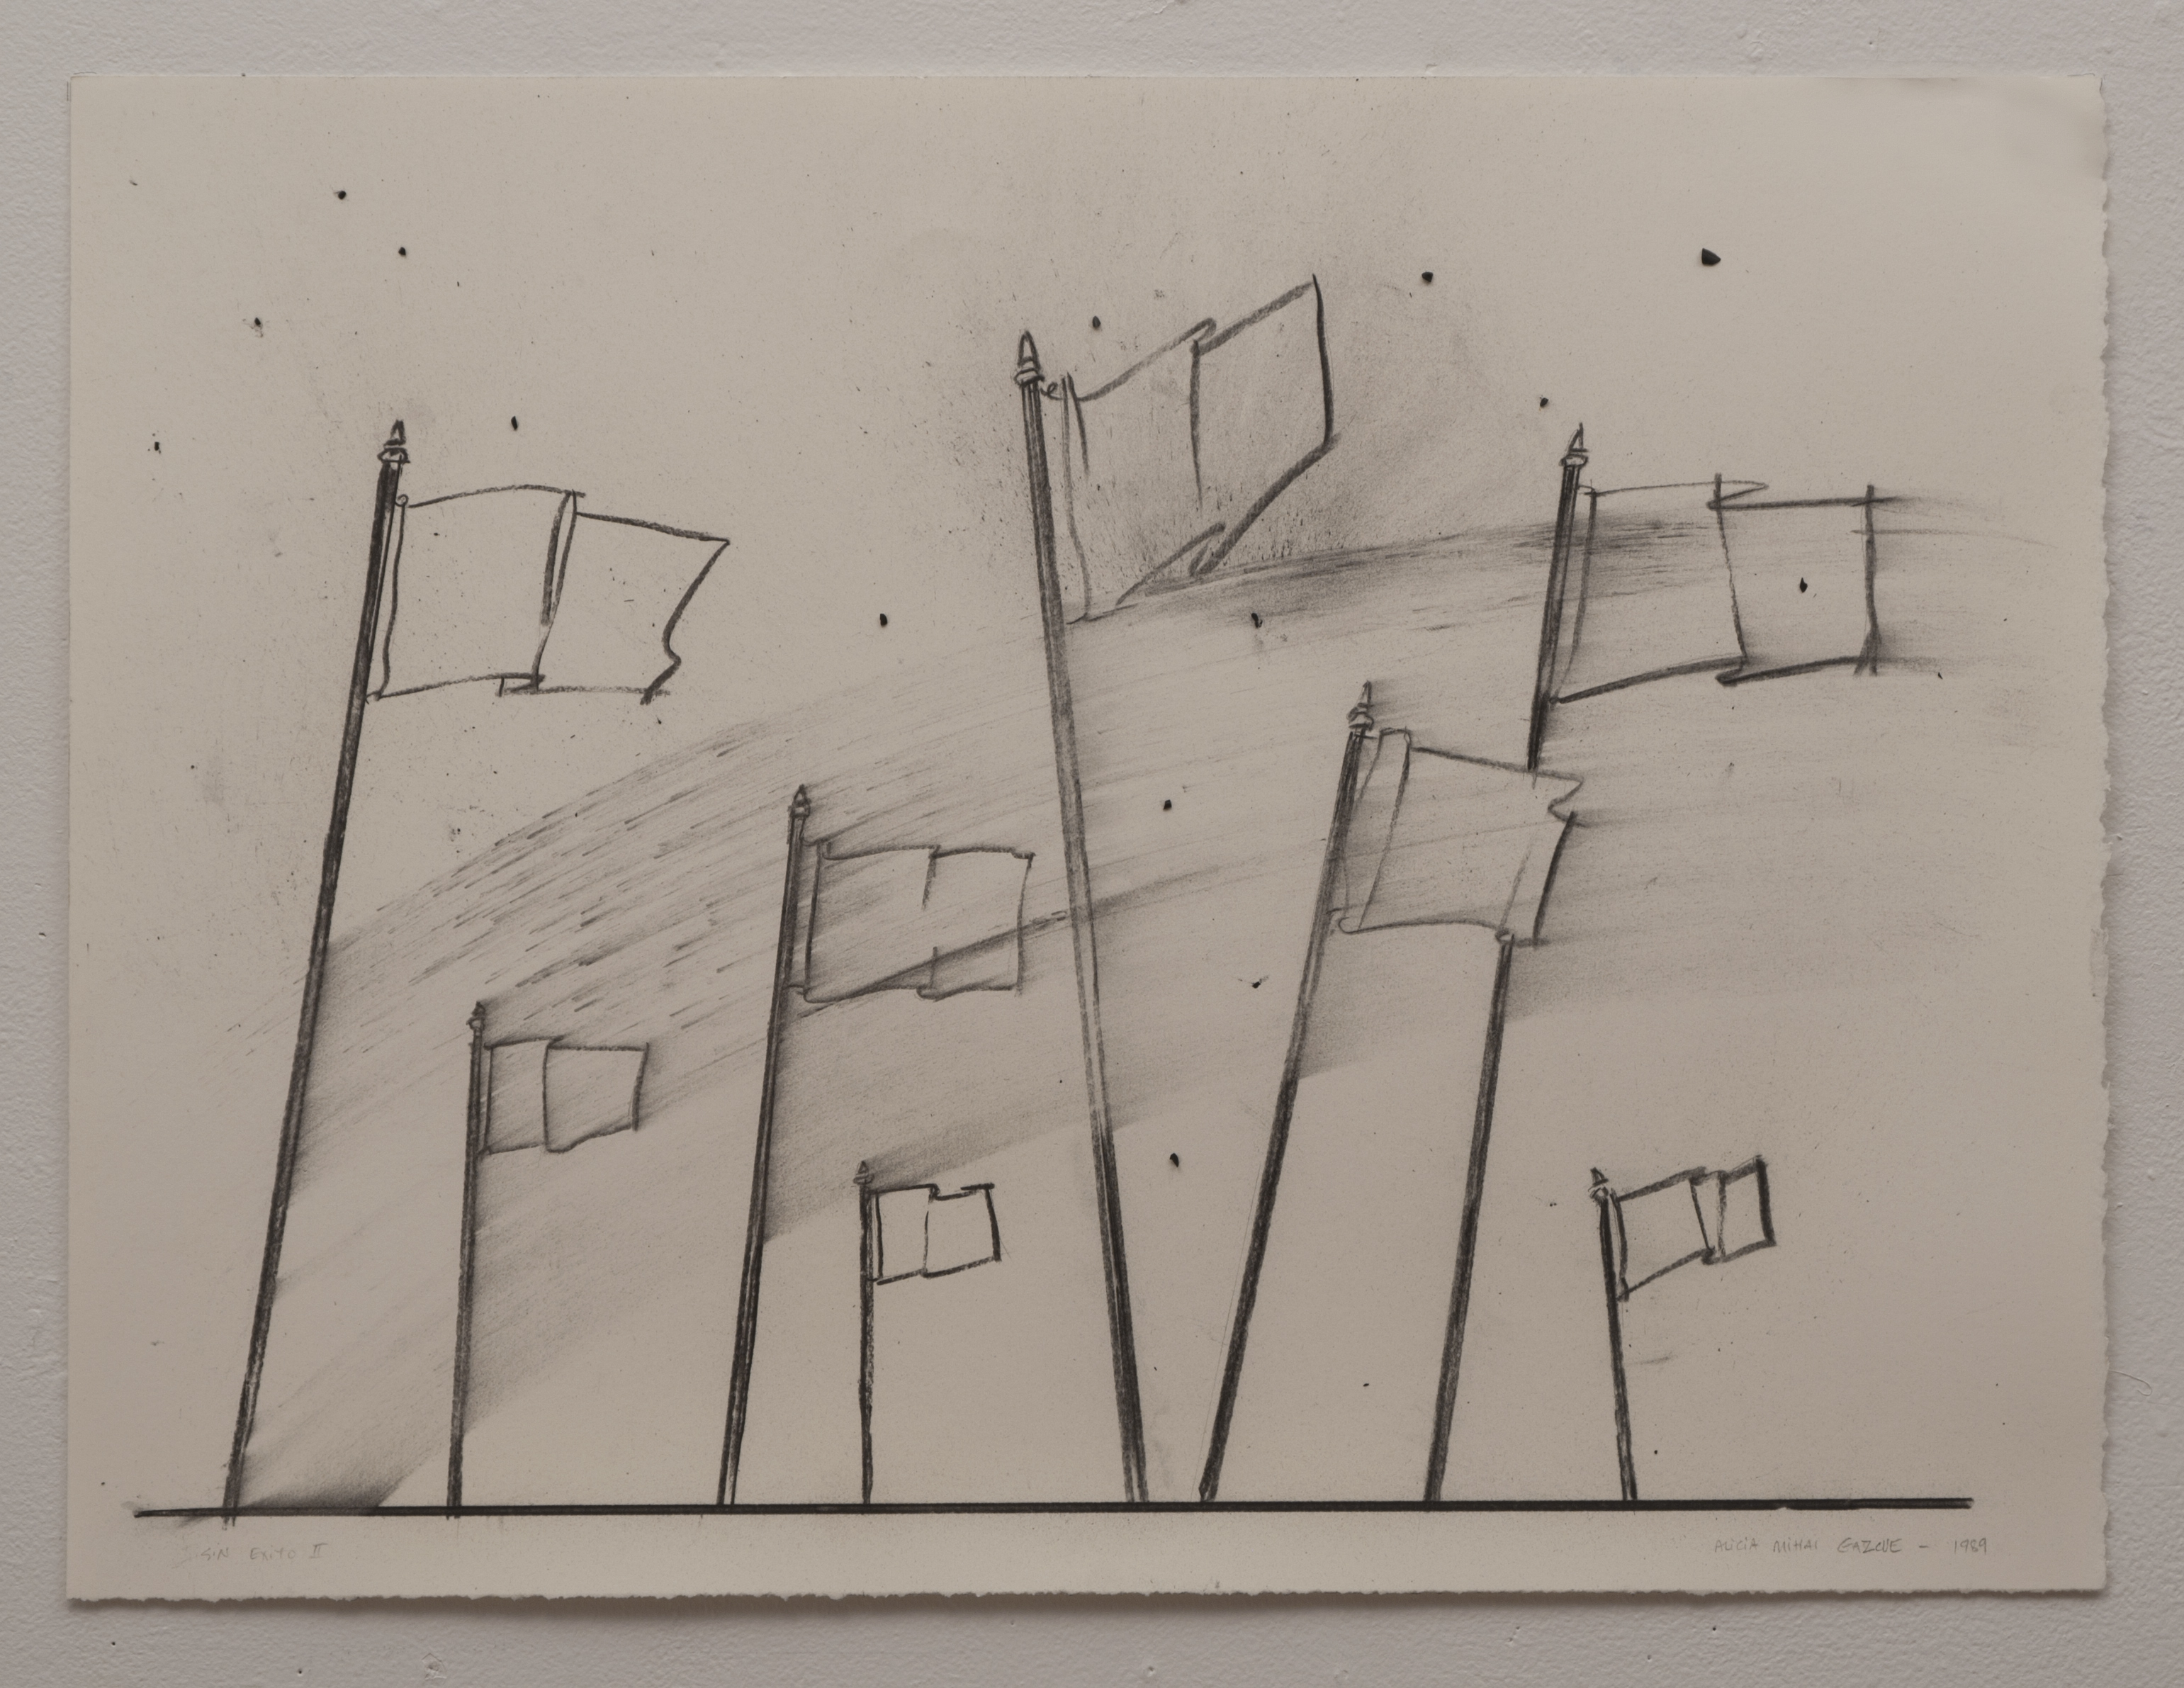 Alicia Mihai Gazcue - Sin exito II (Without Success II). 1989. Carboncillo sobre papel. 48,26 x 66,04 cm.